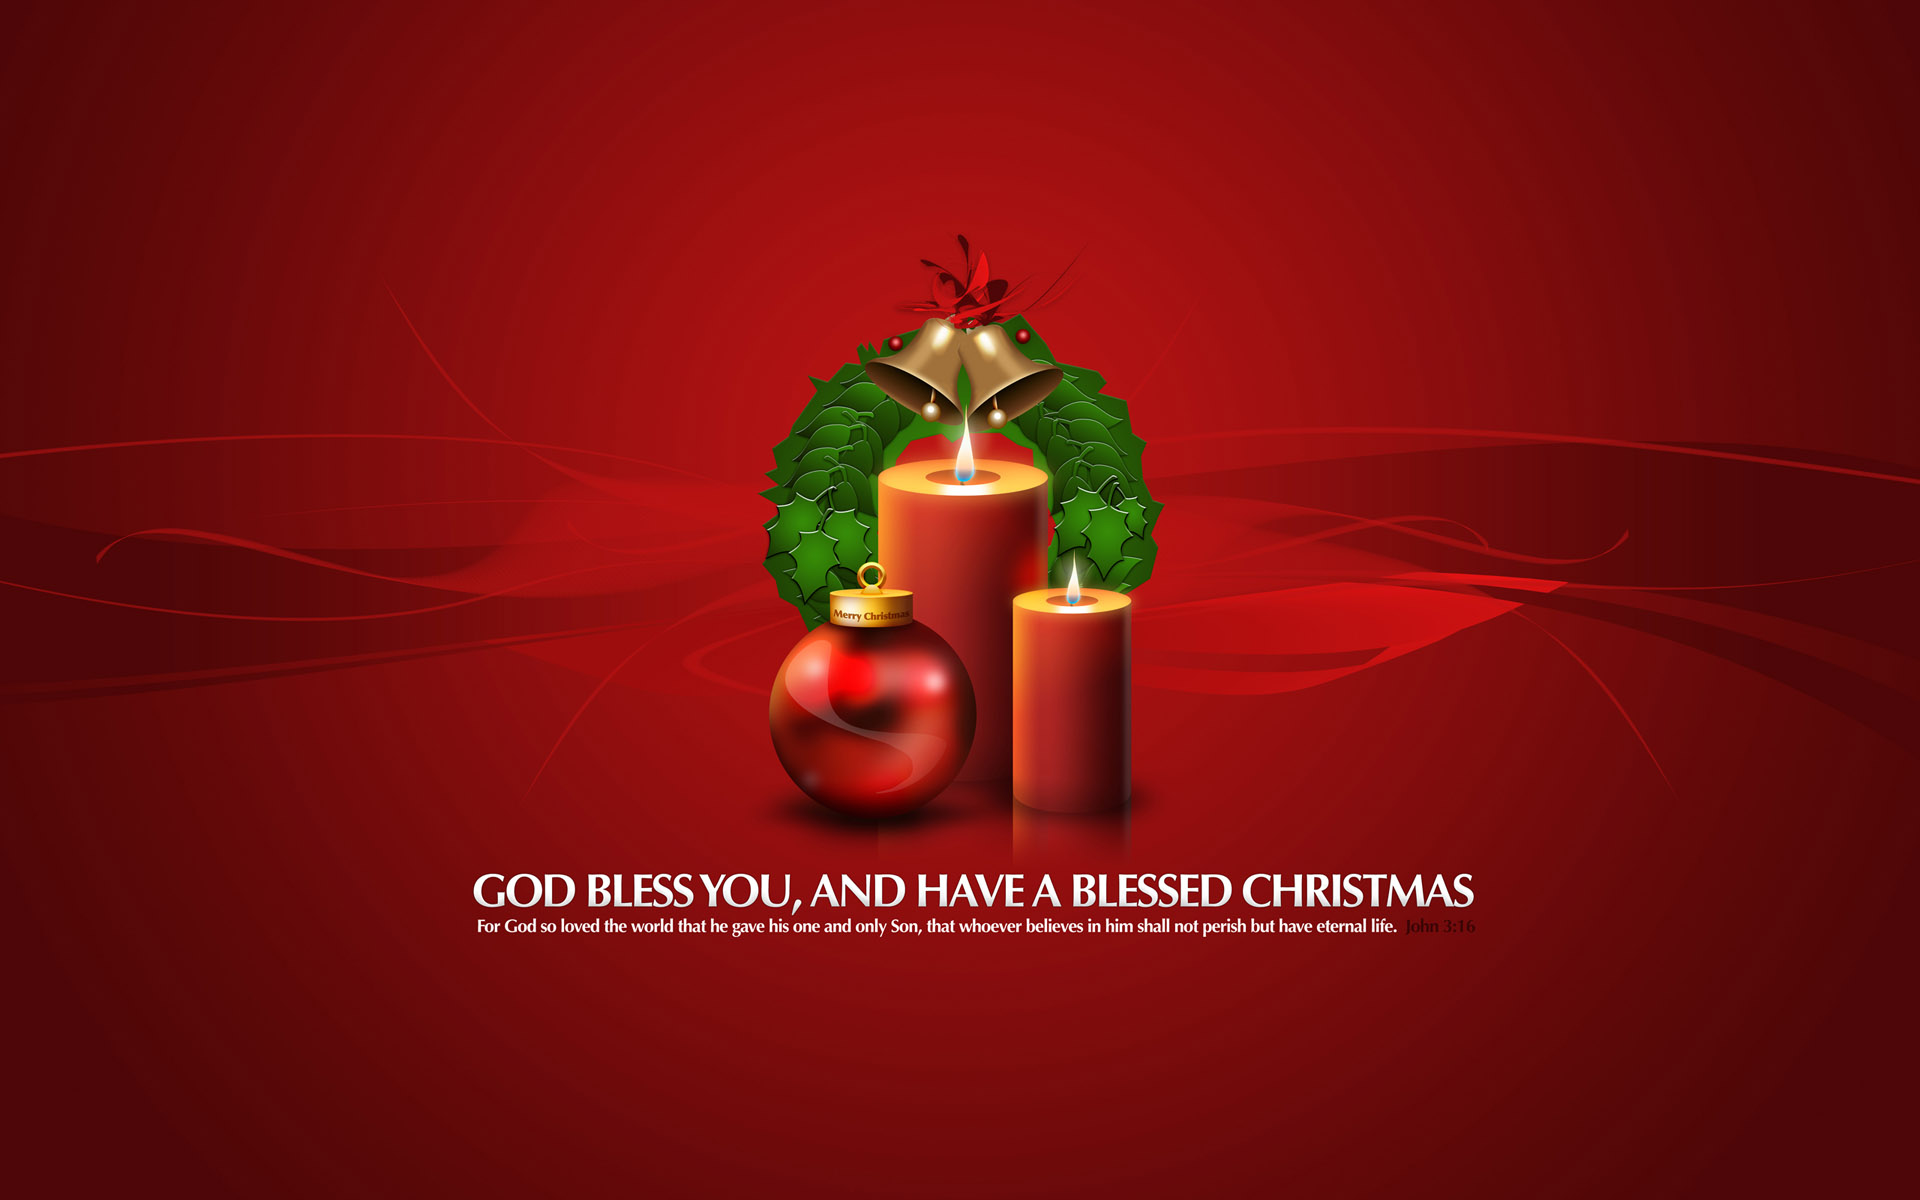 HD Wallpapers God Bless You Christmas Gifts